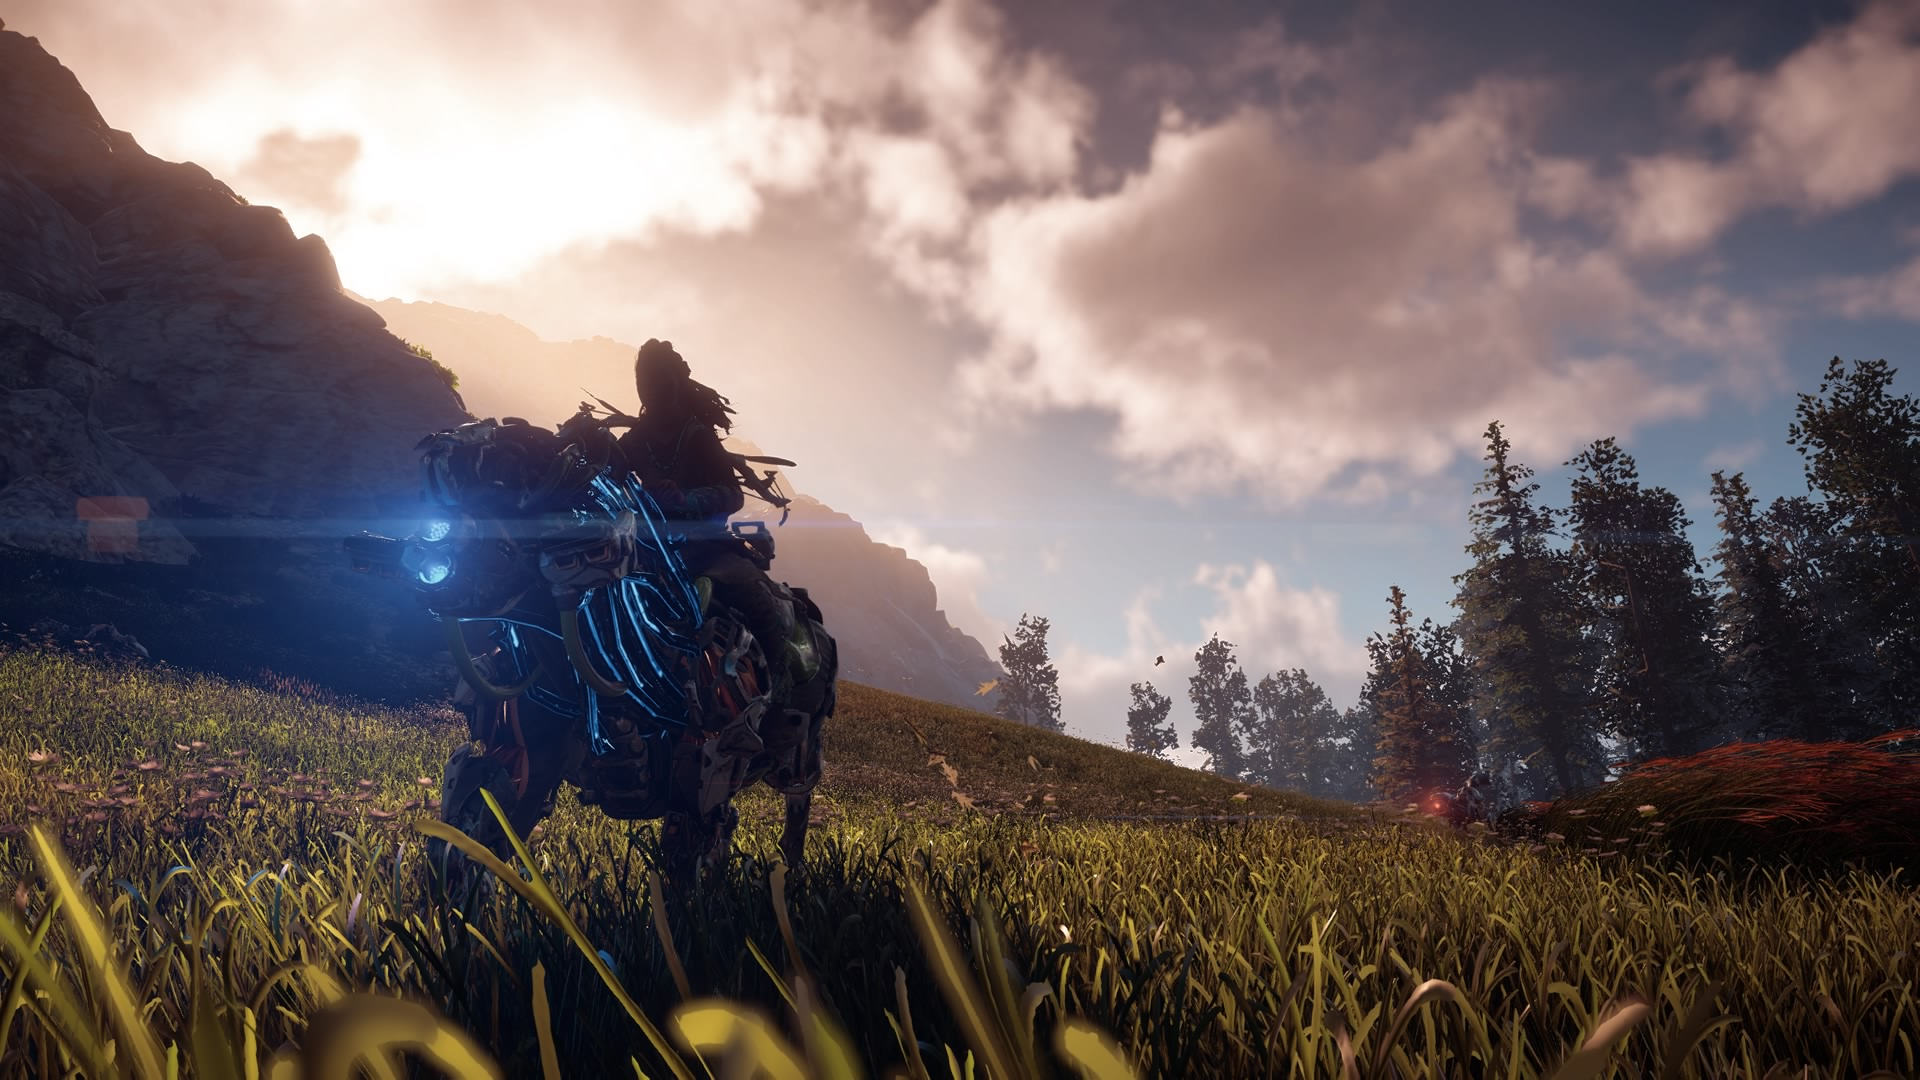 horizon_zero_dawn_20170306234831.jpg